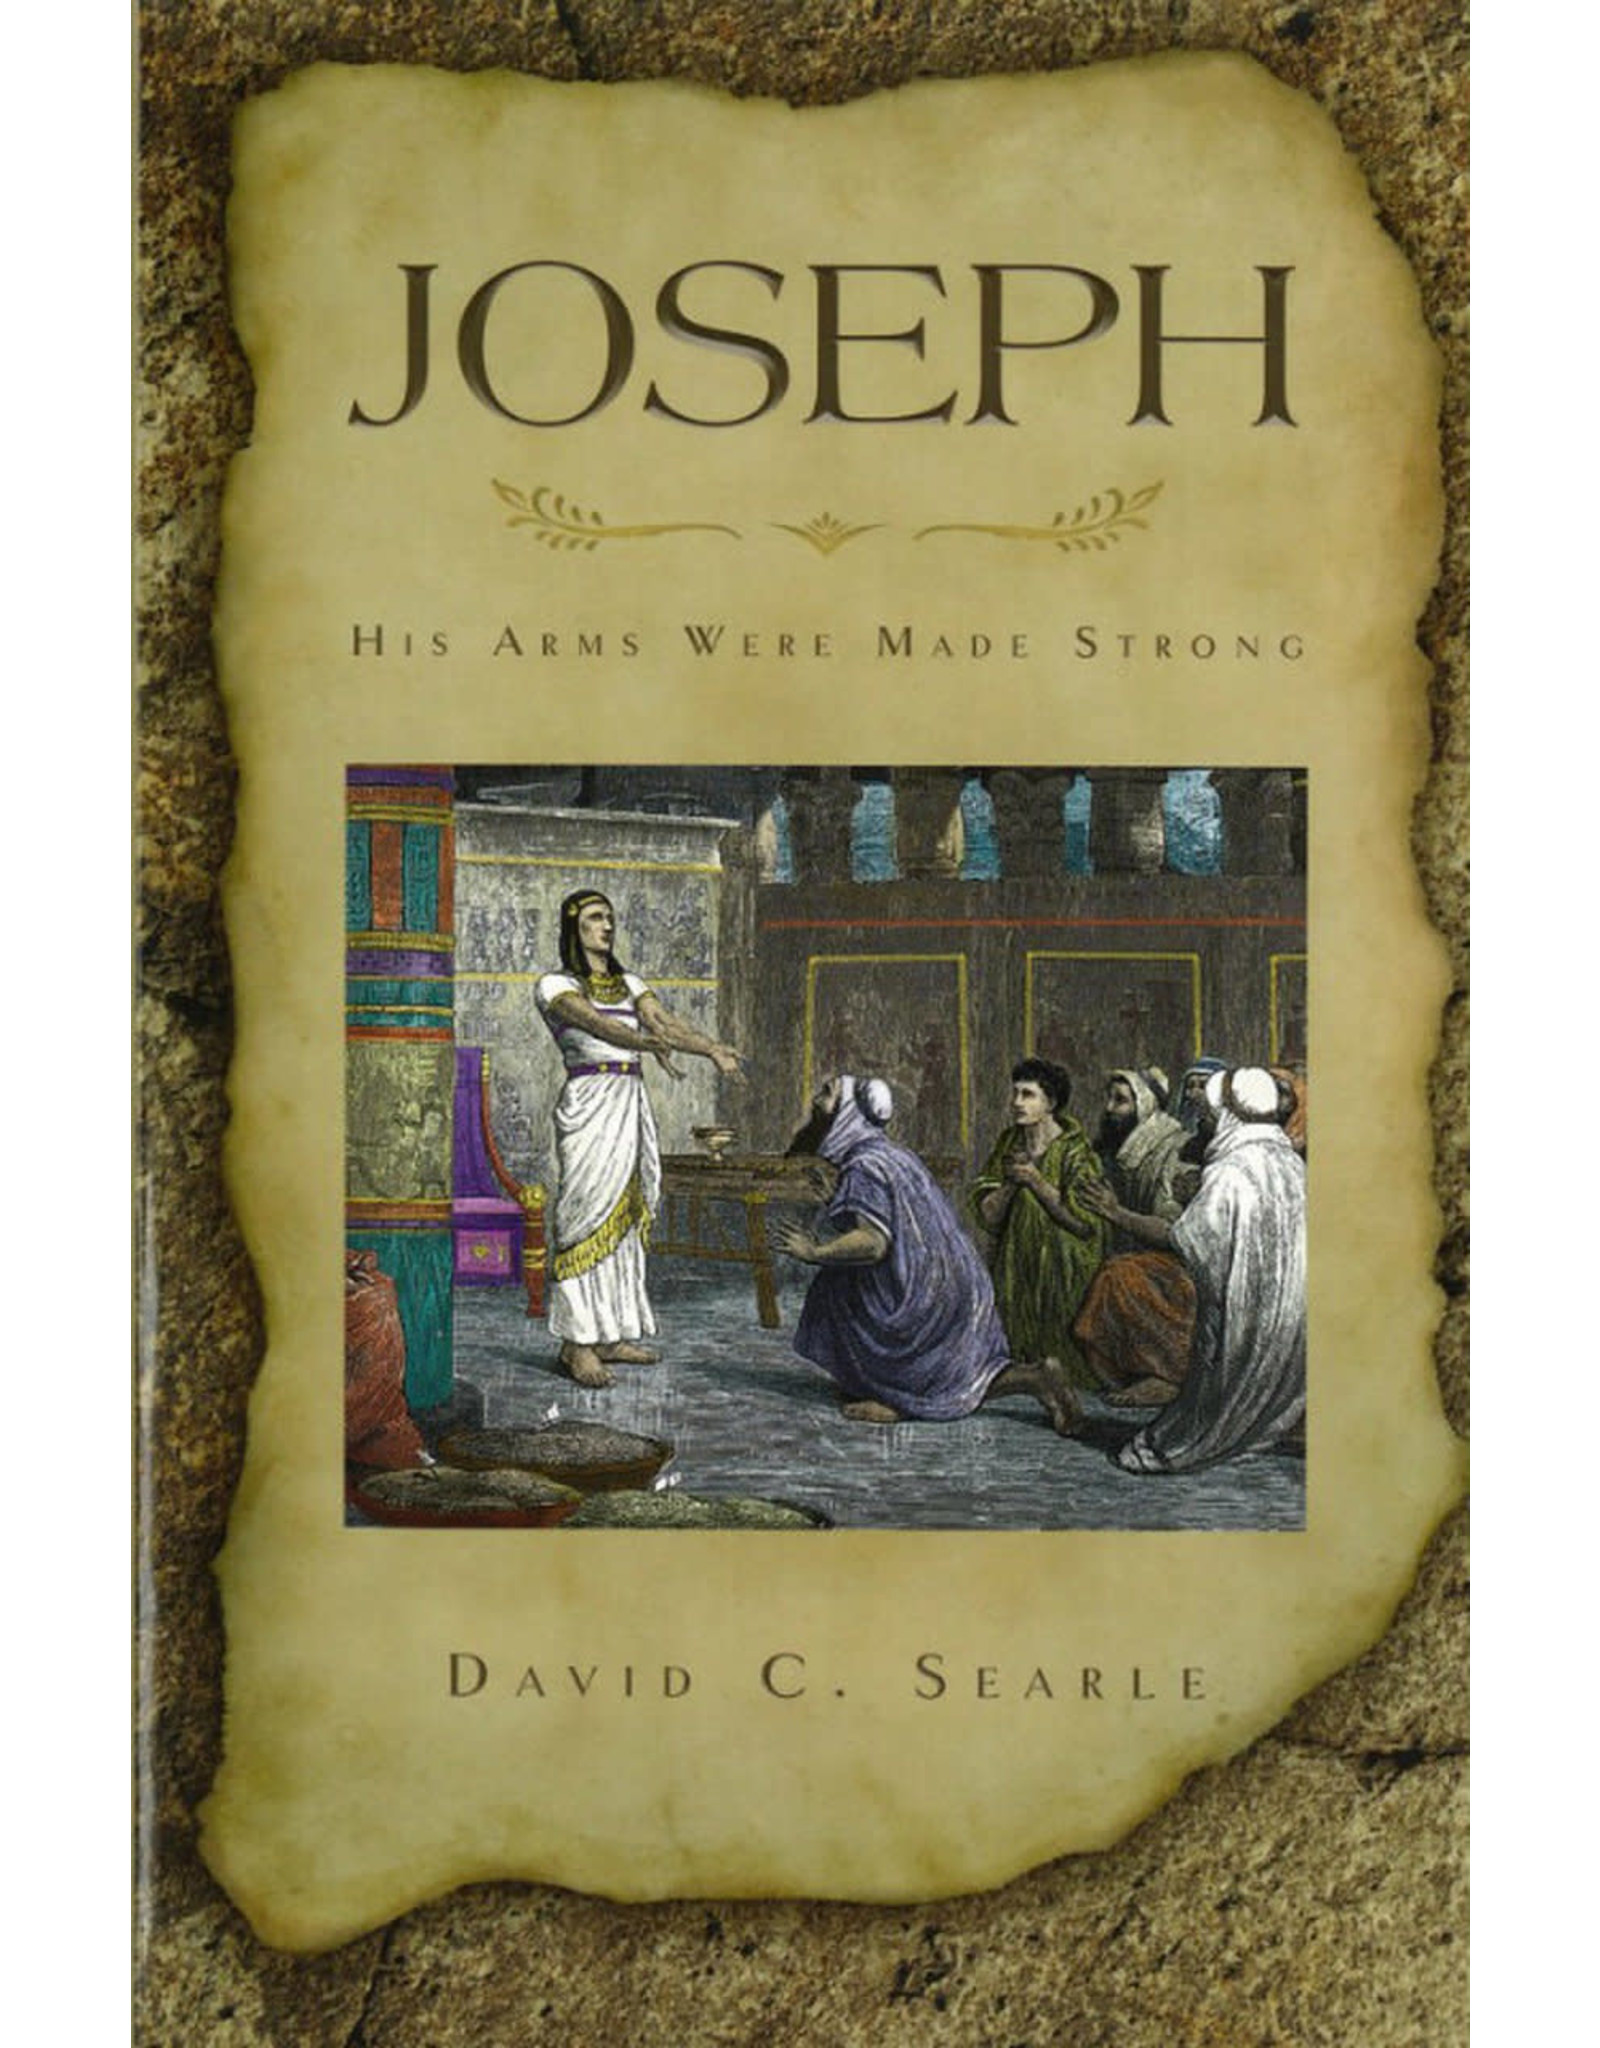 David Searle Joseph: His Arms Were Made Strong